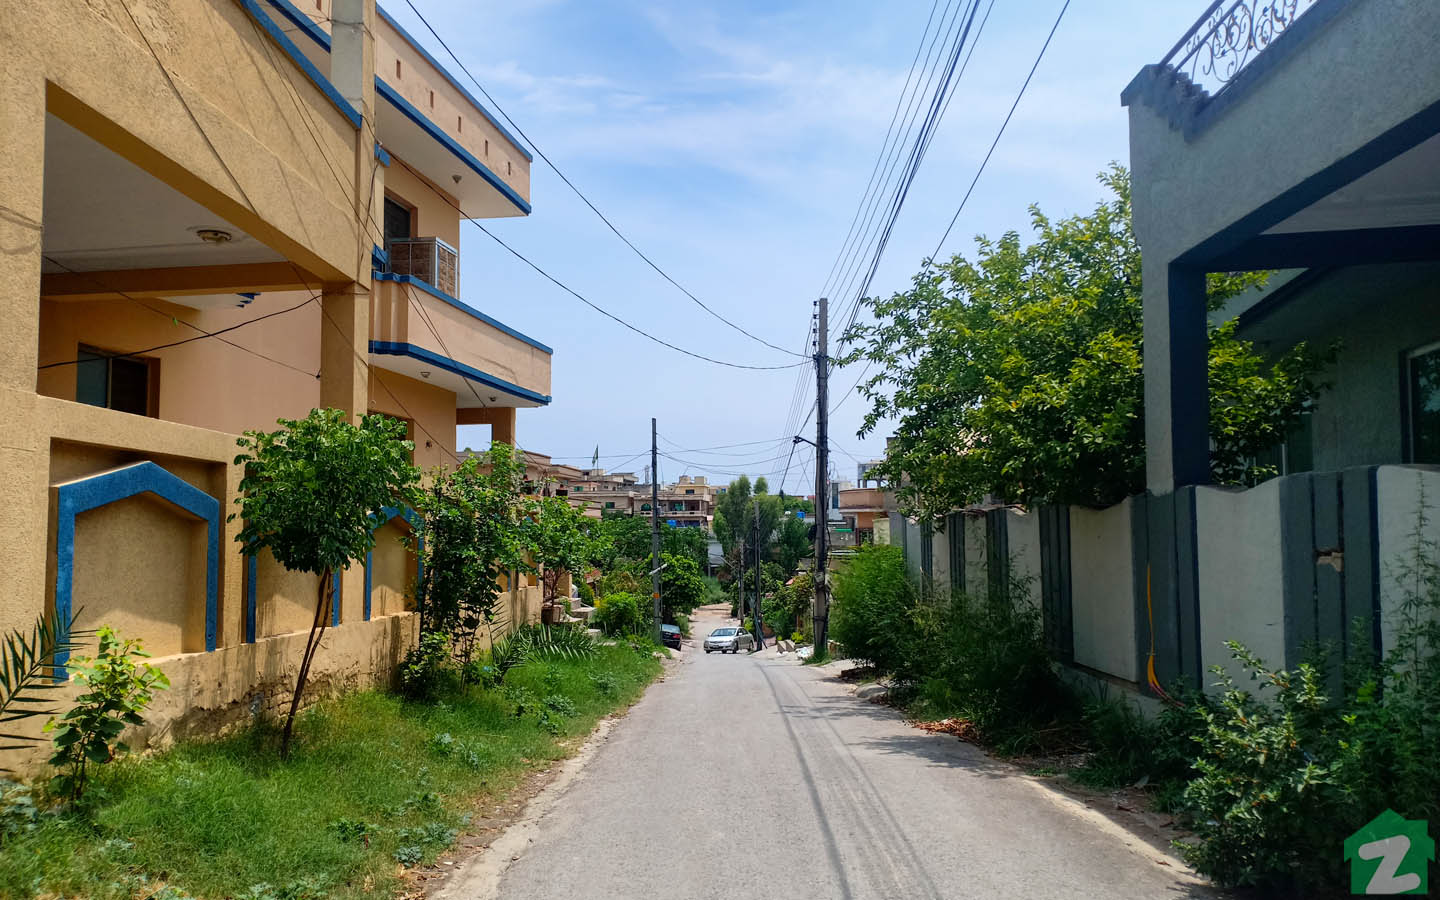 Street view of houses in Pakistan Town Islamabad